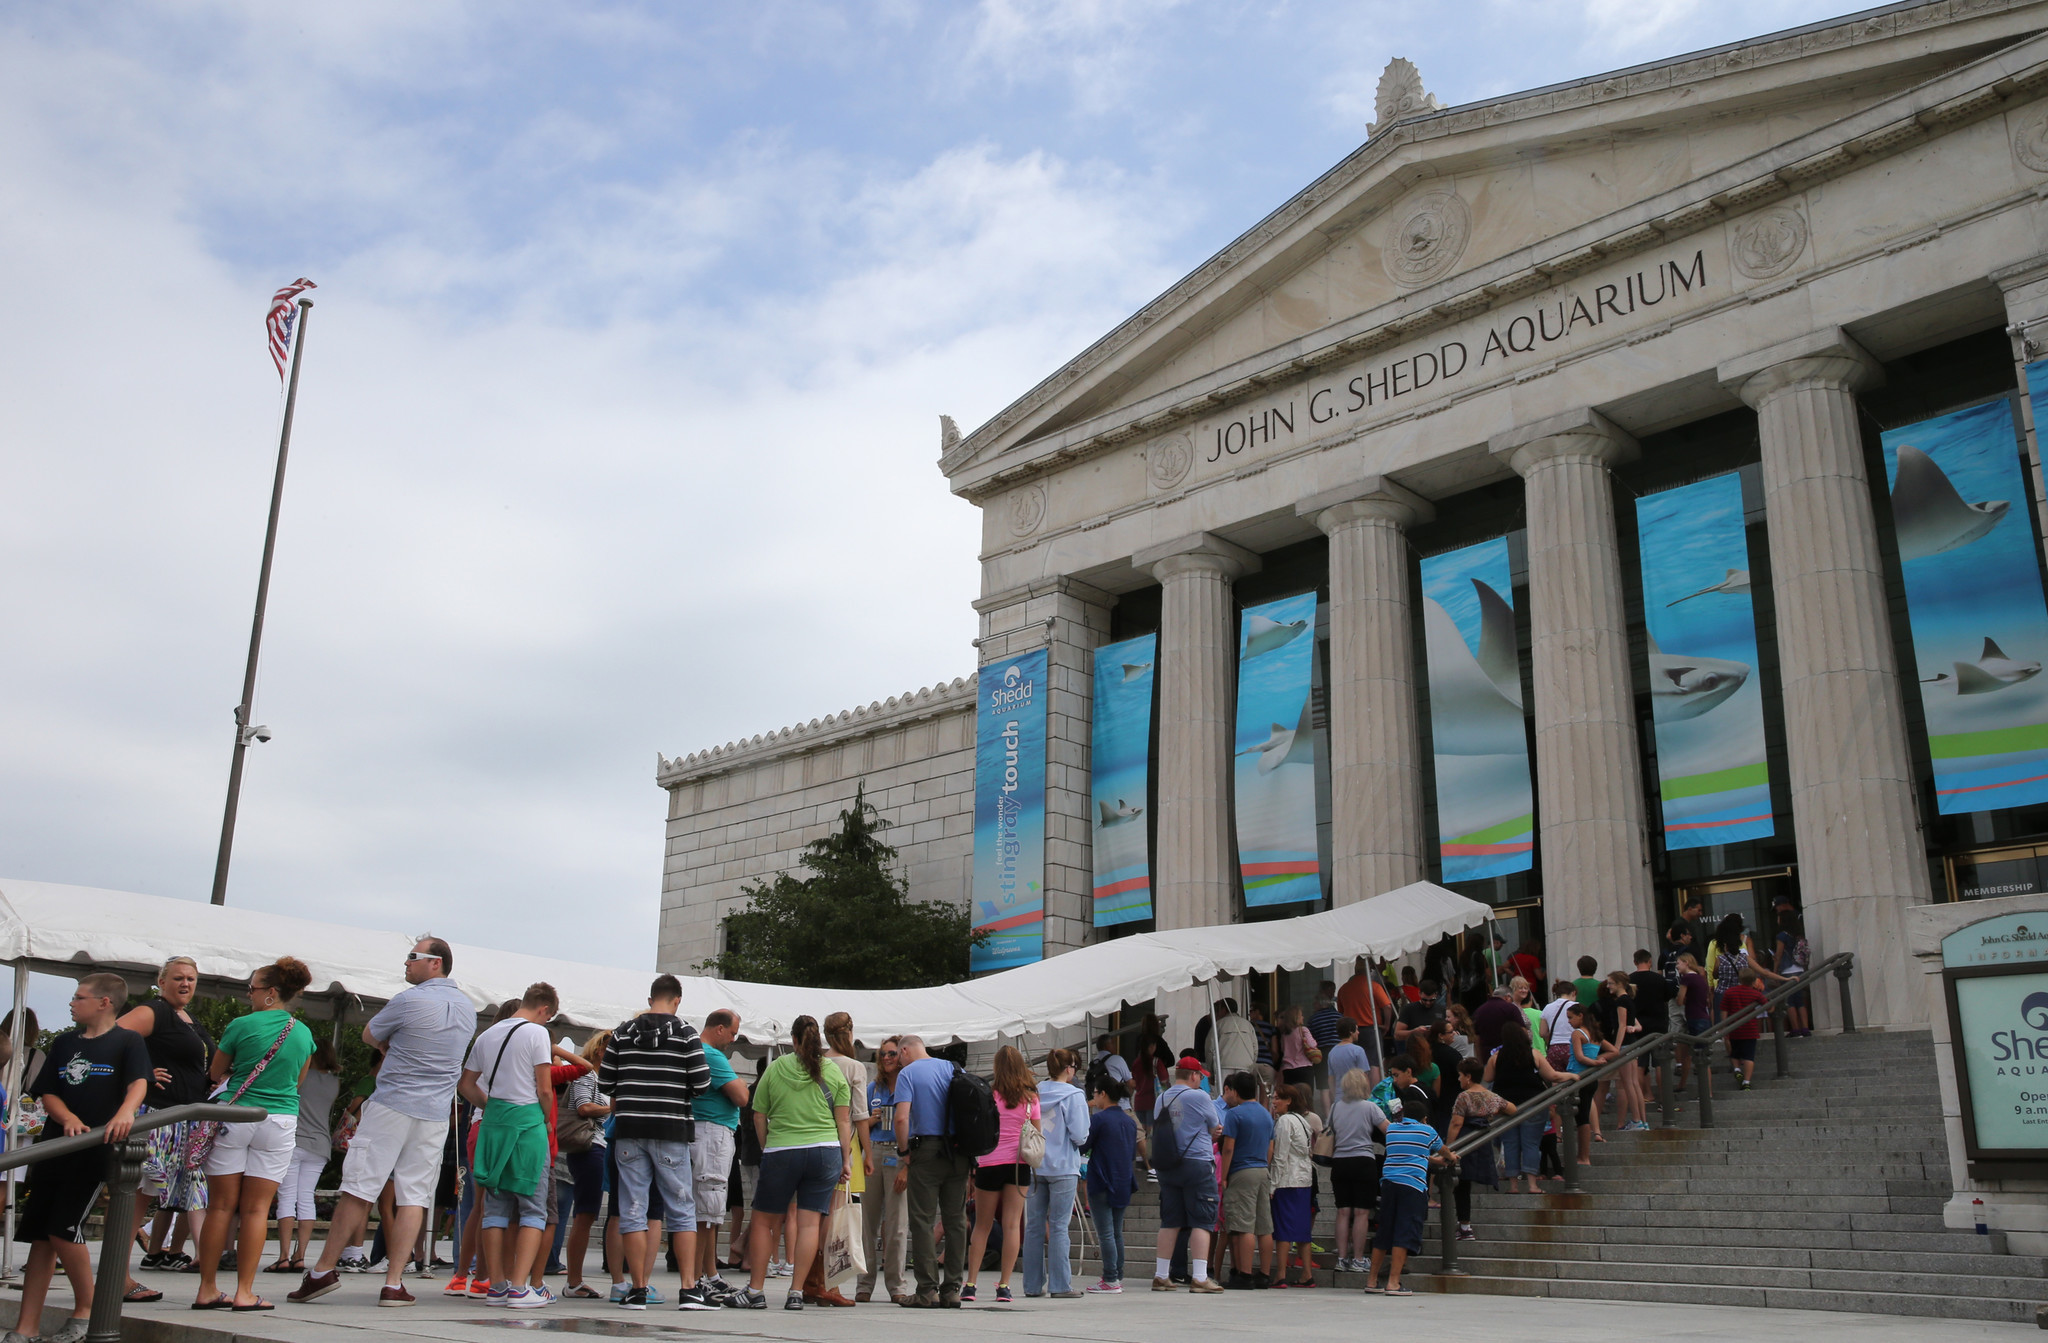 Dec 03,  · Shedd_Aquarium, Manager at Shedd Aquarium, responded to this review Responded 1 week ago Glad you had a nice visit! As we are a non-profit, ticket sales help support our mission and worldwide conservation efforts, so we appreciate every contribution.4/4(K).